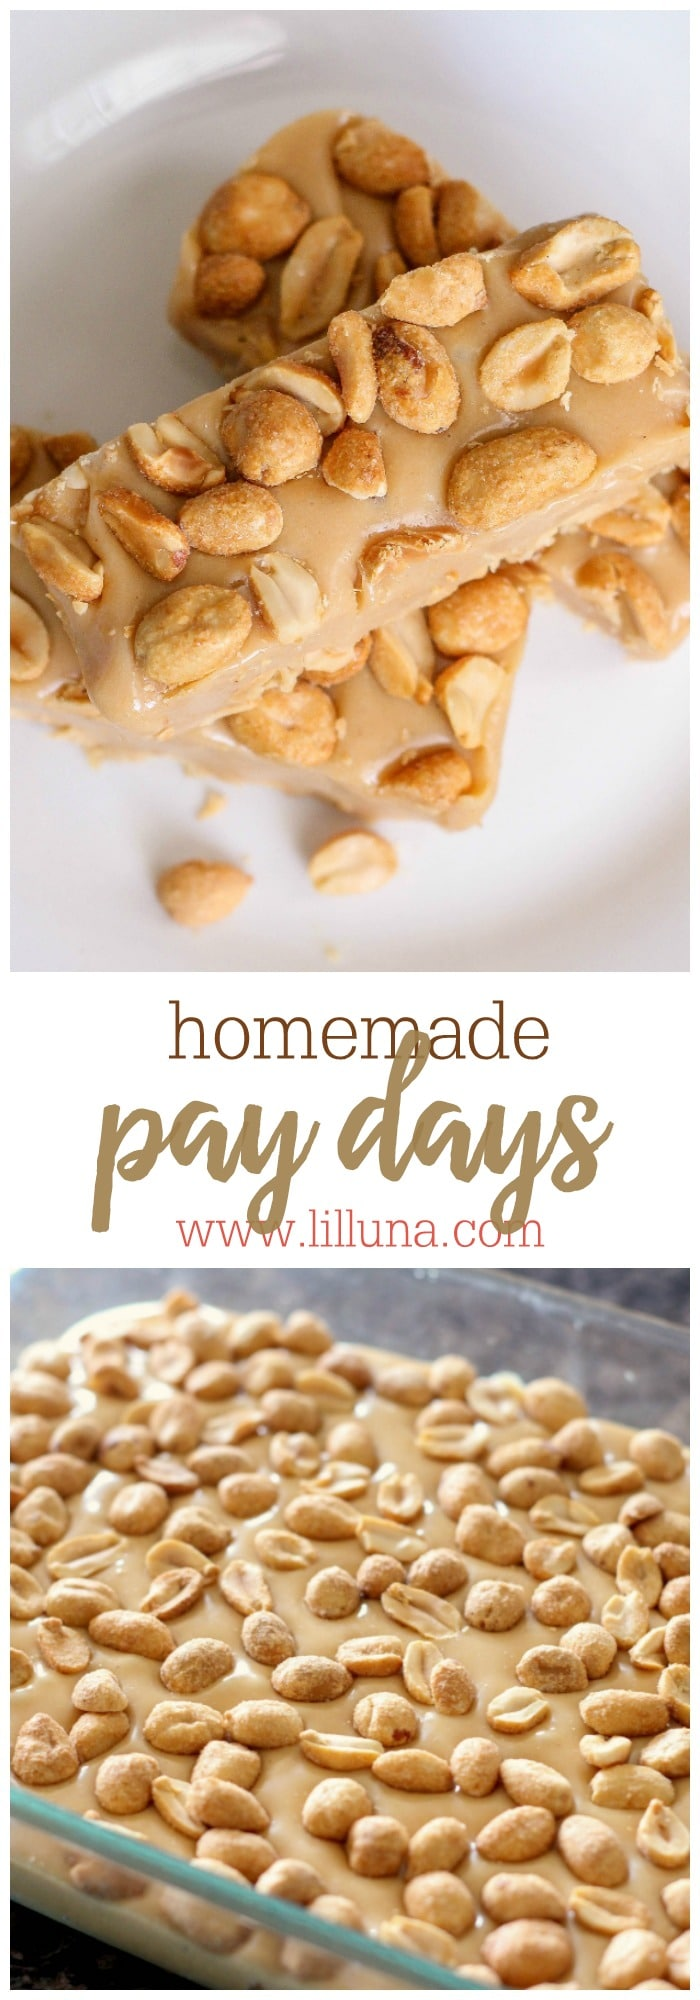 Homemade Pay Day Candy Bars